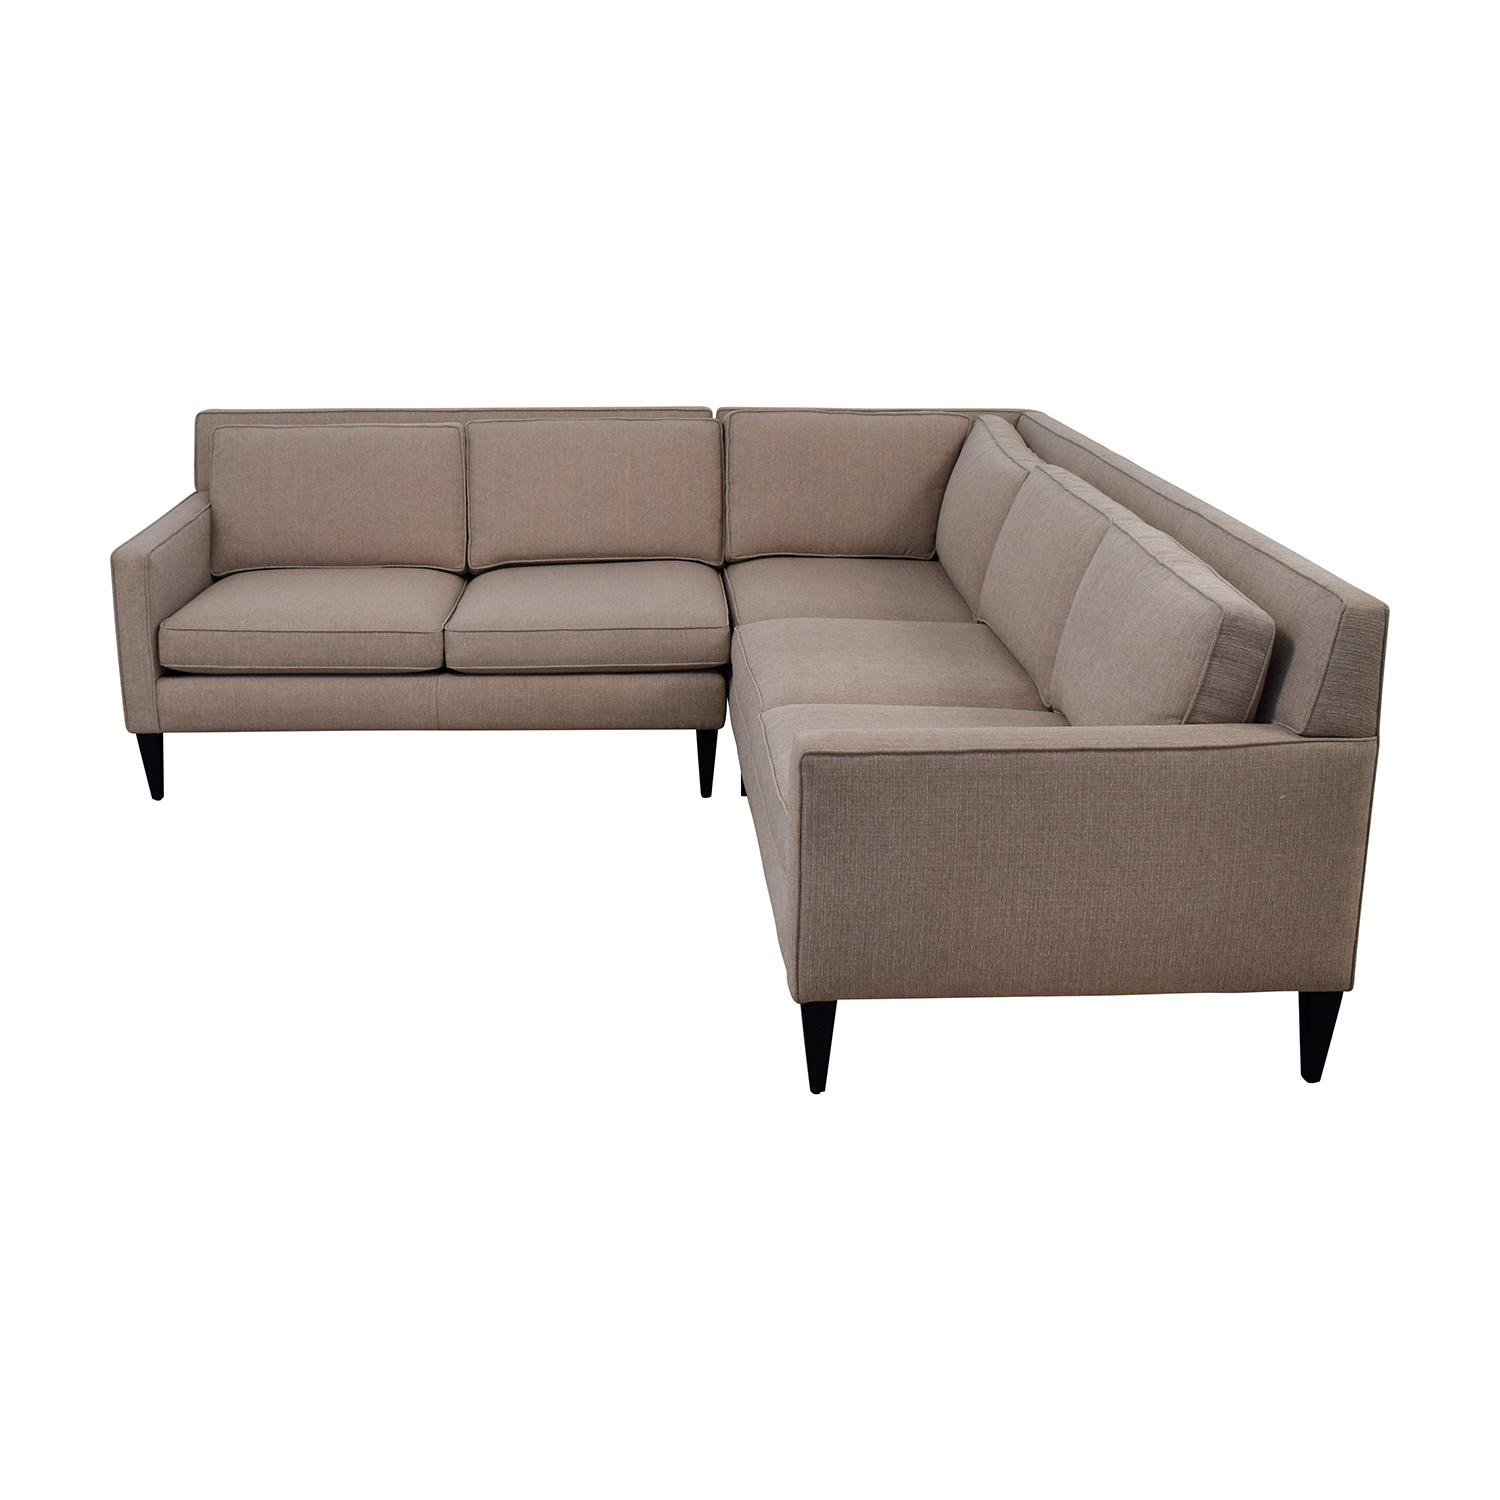 shop Crate & Barrel Rochelle Midcentury Modern Sectional Crate & Barrel Sofas